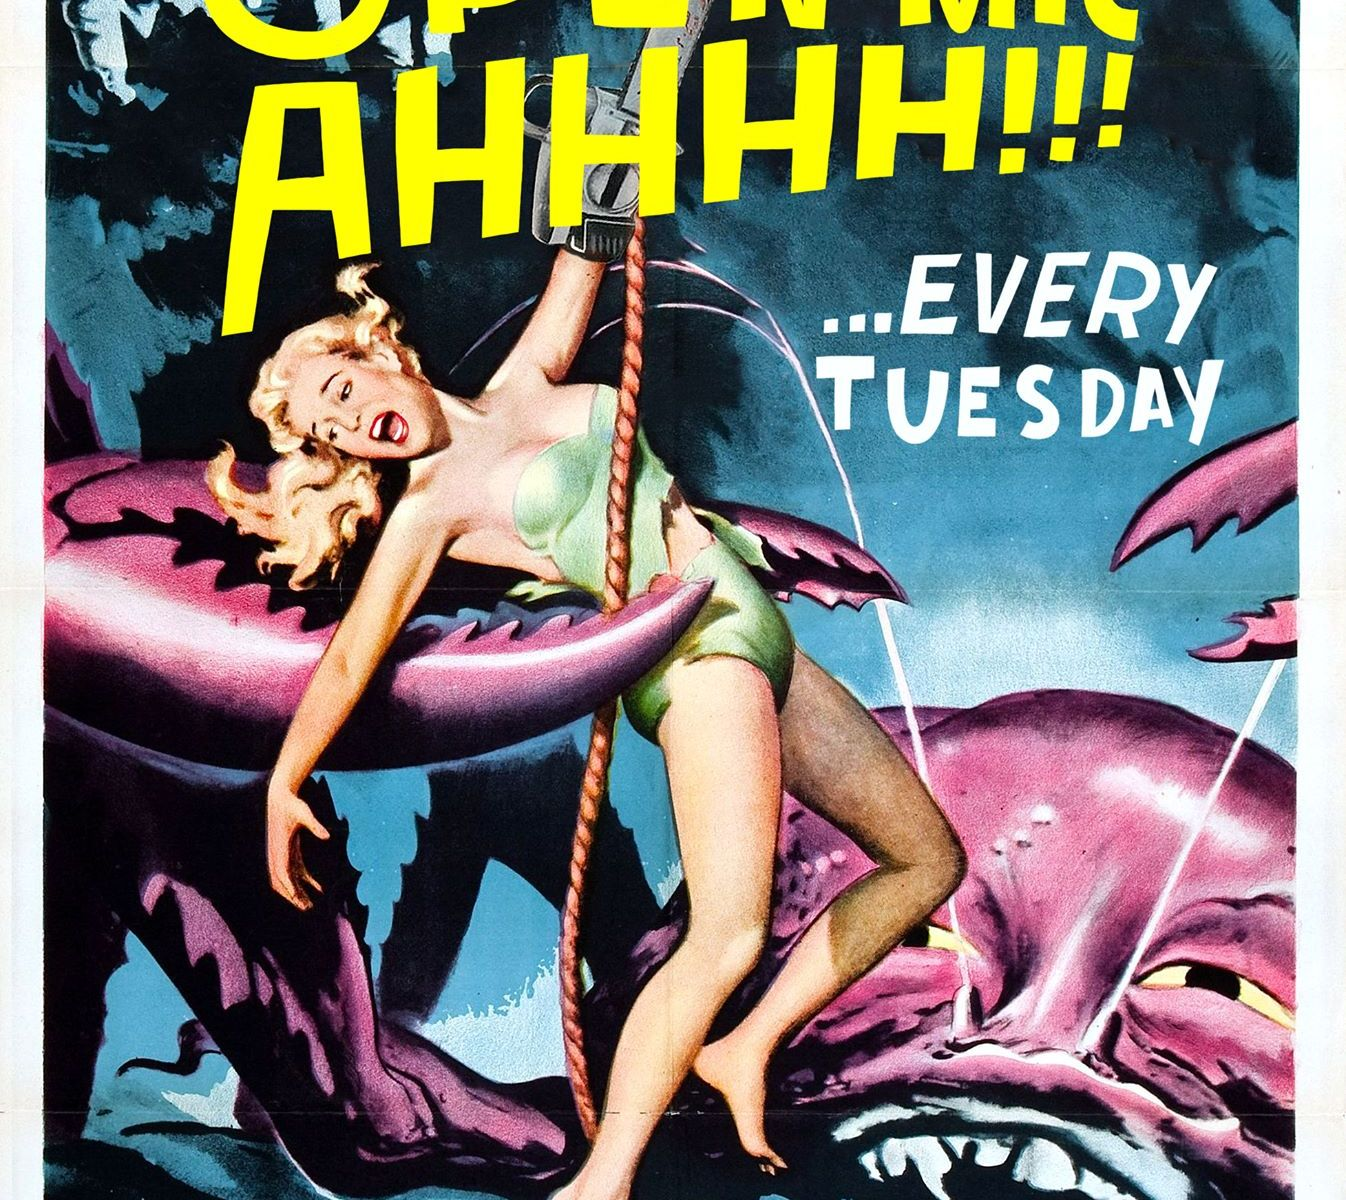 AHHHH!!! Open mic at Tin Dog Tavern every Tuesday